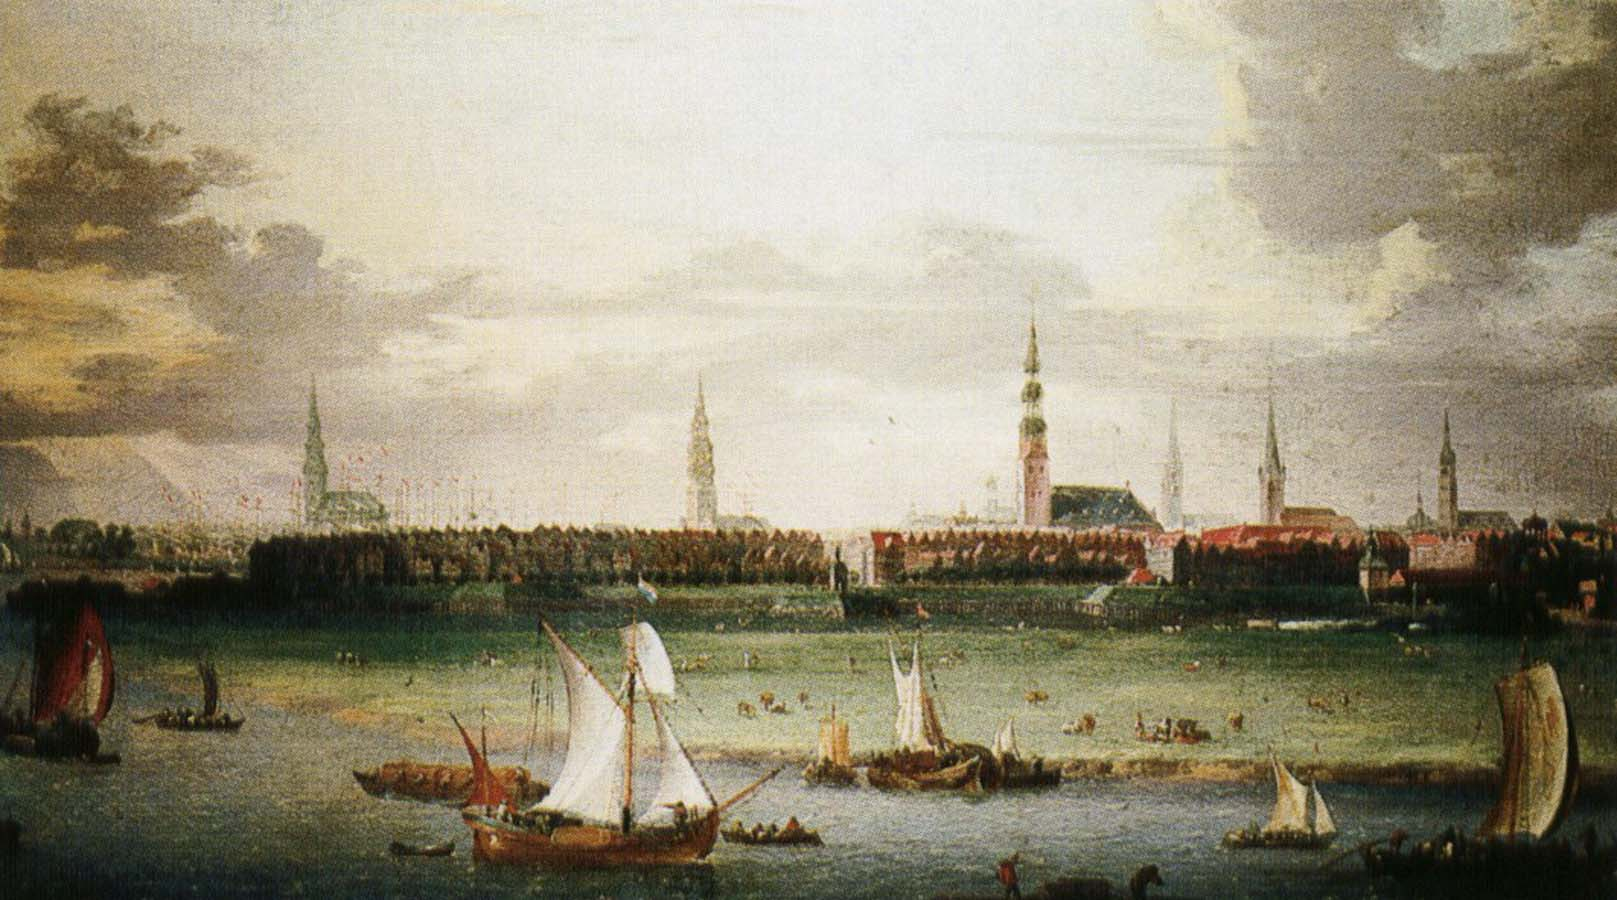 wolfgang amadeus mozart Anonymous painting Hamburg, one of the most important Hanseatic port